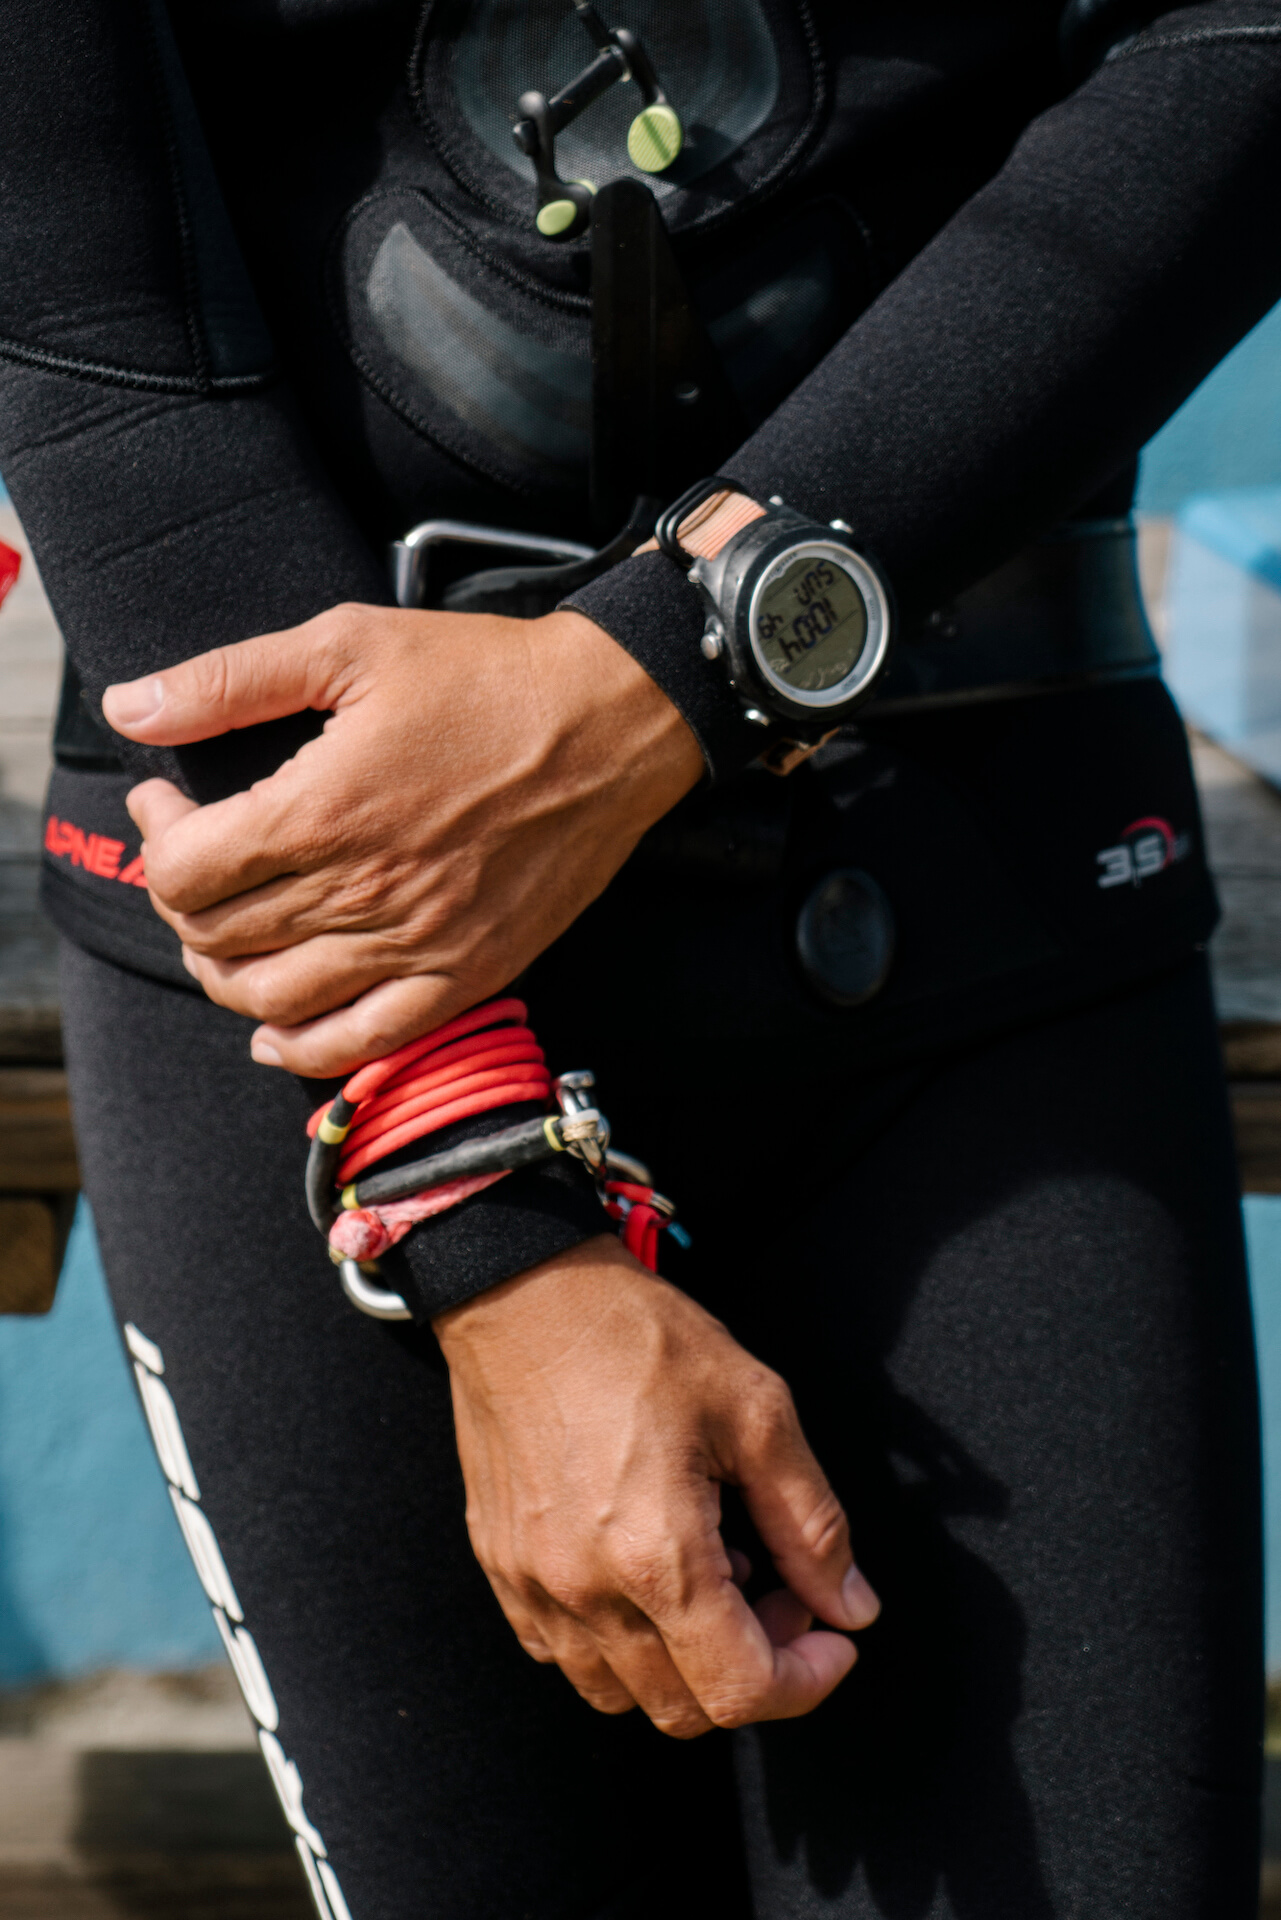 Details of freediving gear